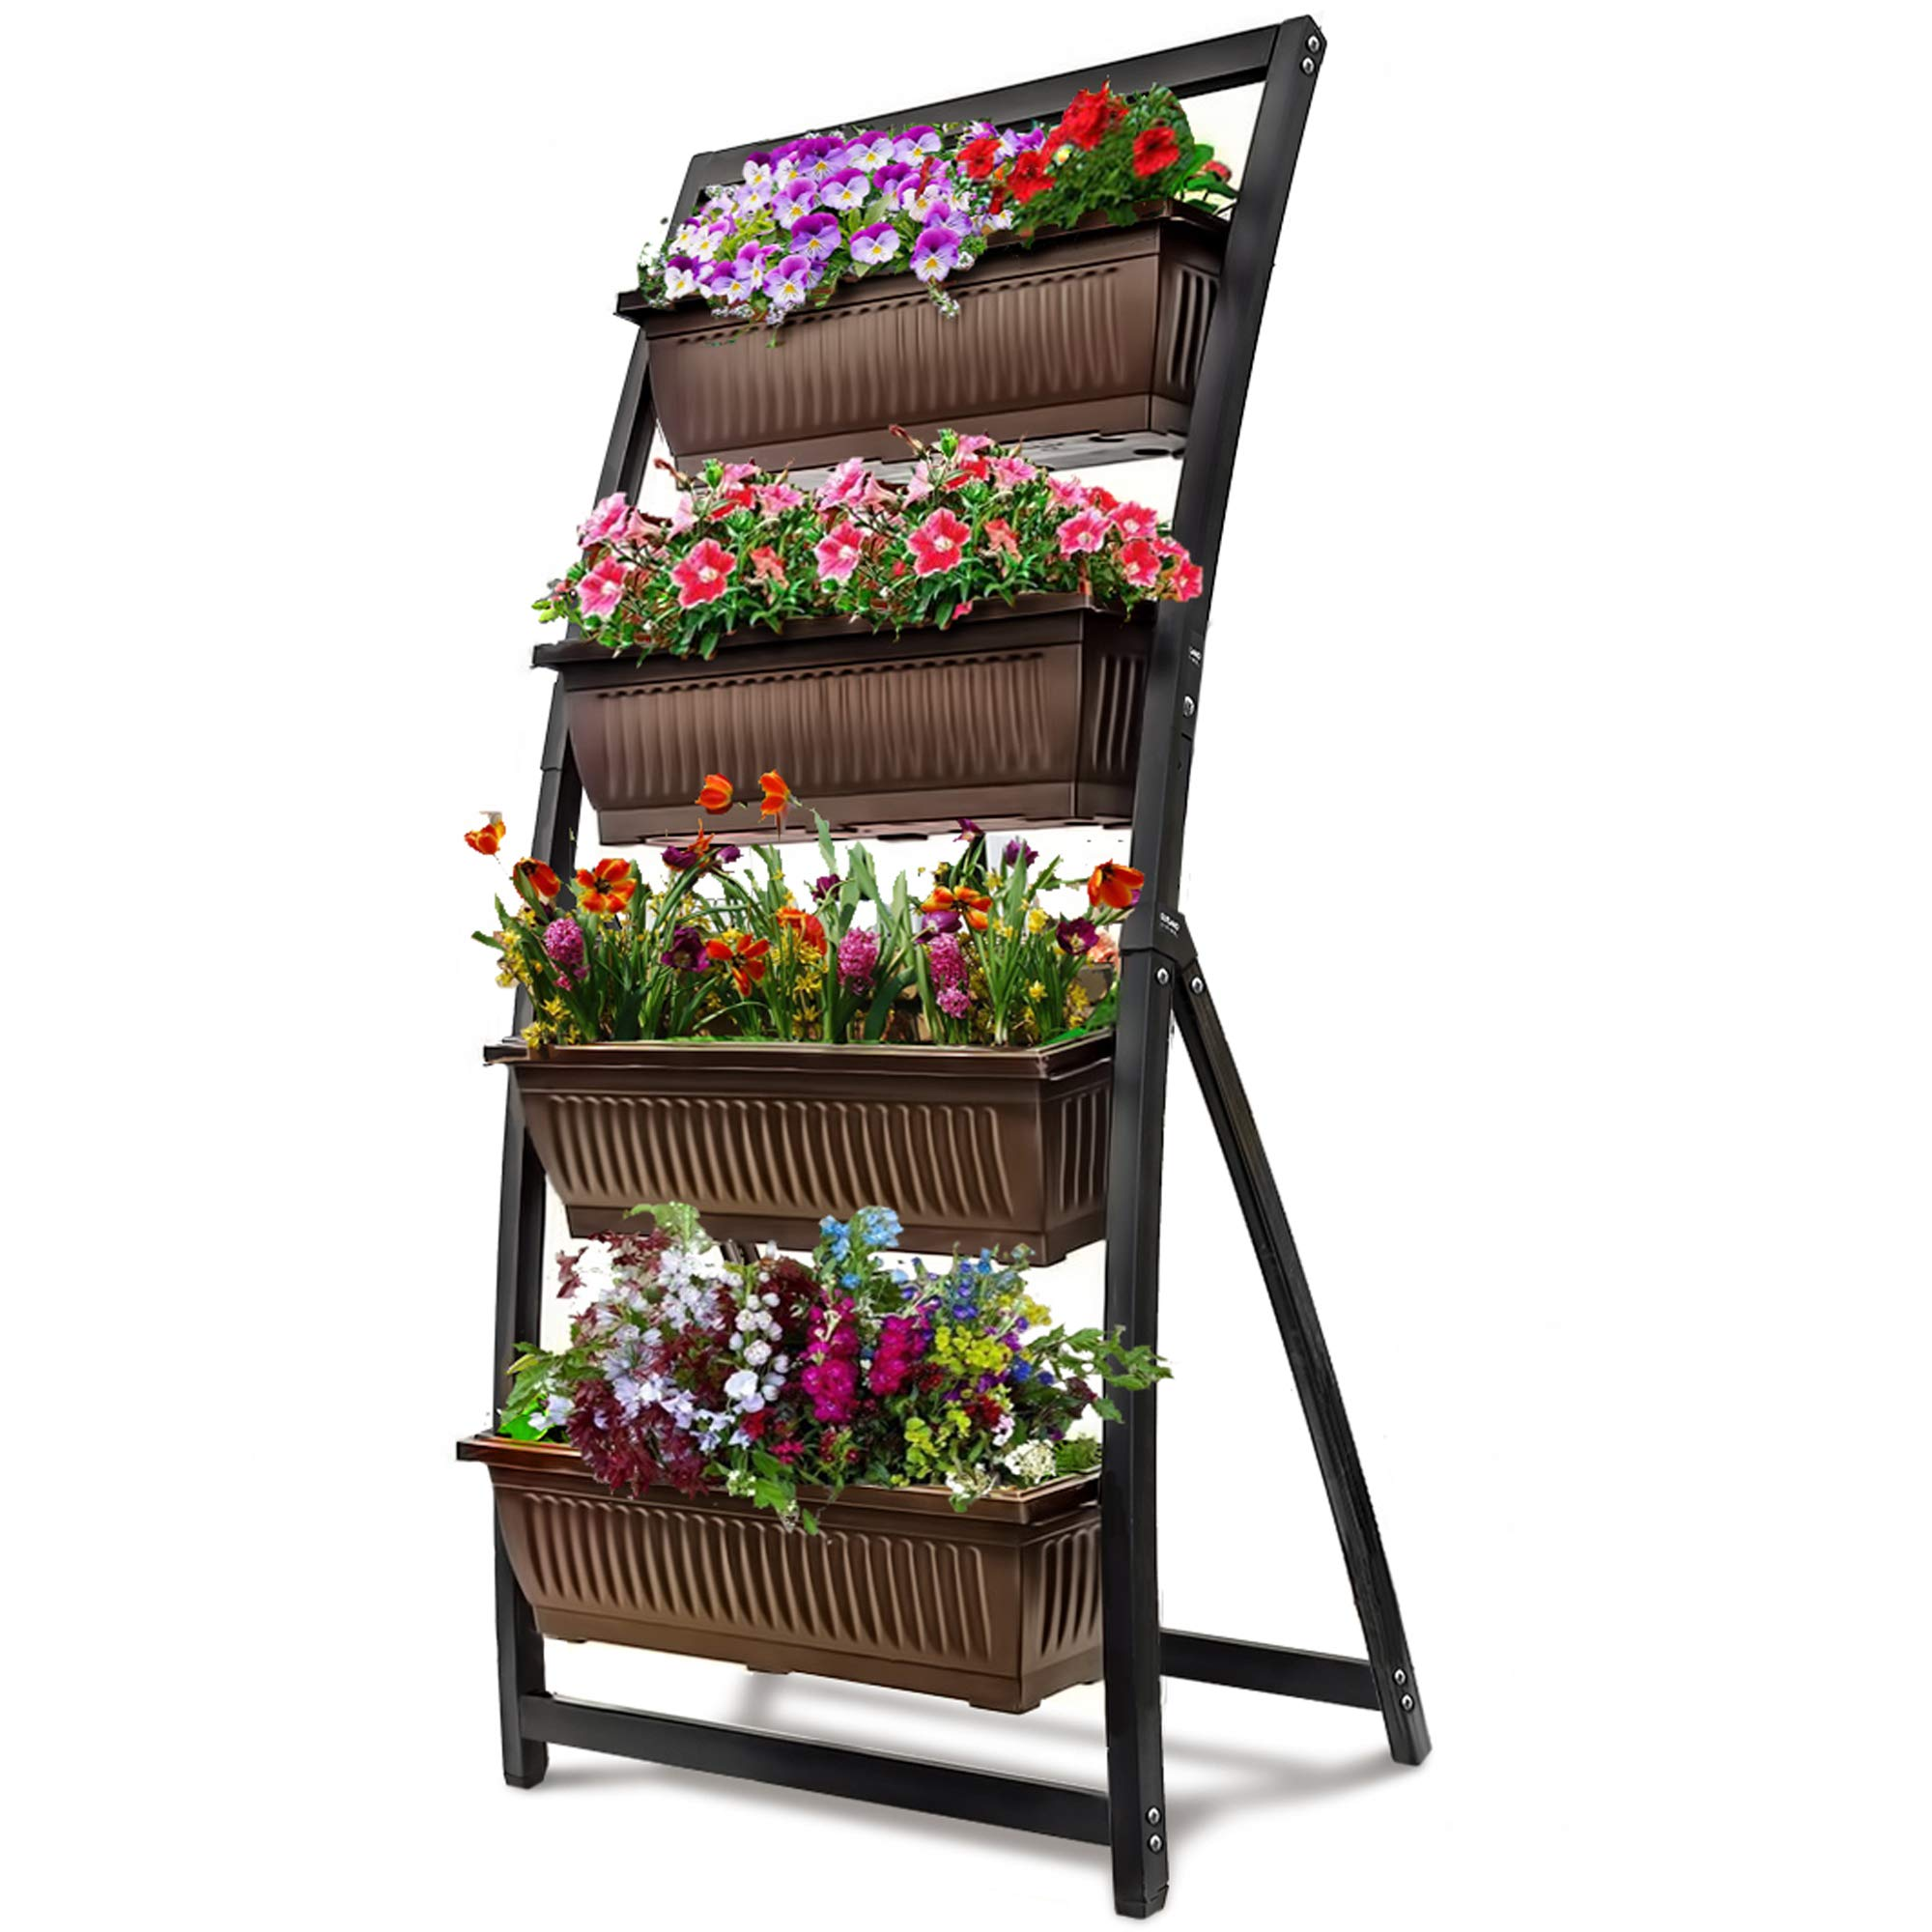 6-Ft Raised Garden Bed - Vertical Garden Freestanding Elevated Planter with 4 Container Boxes - Good for Patio or Balcony Indoor and Outdoor - Cascading Water Drainage (1-Pack/Espresso Brown) by Outland Living